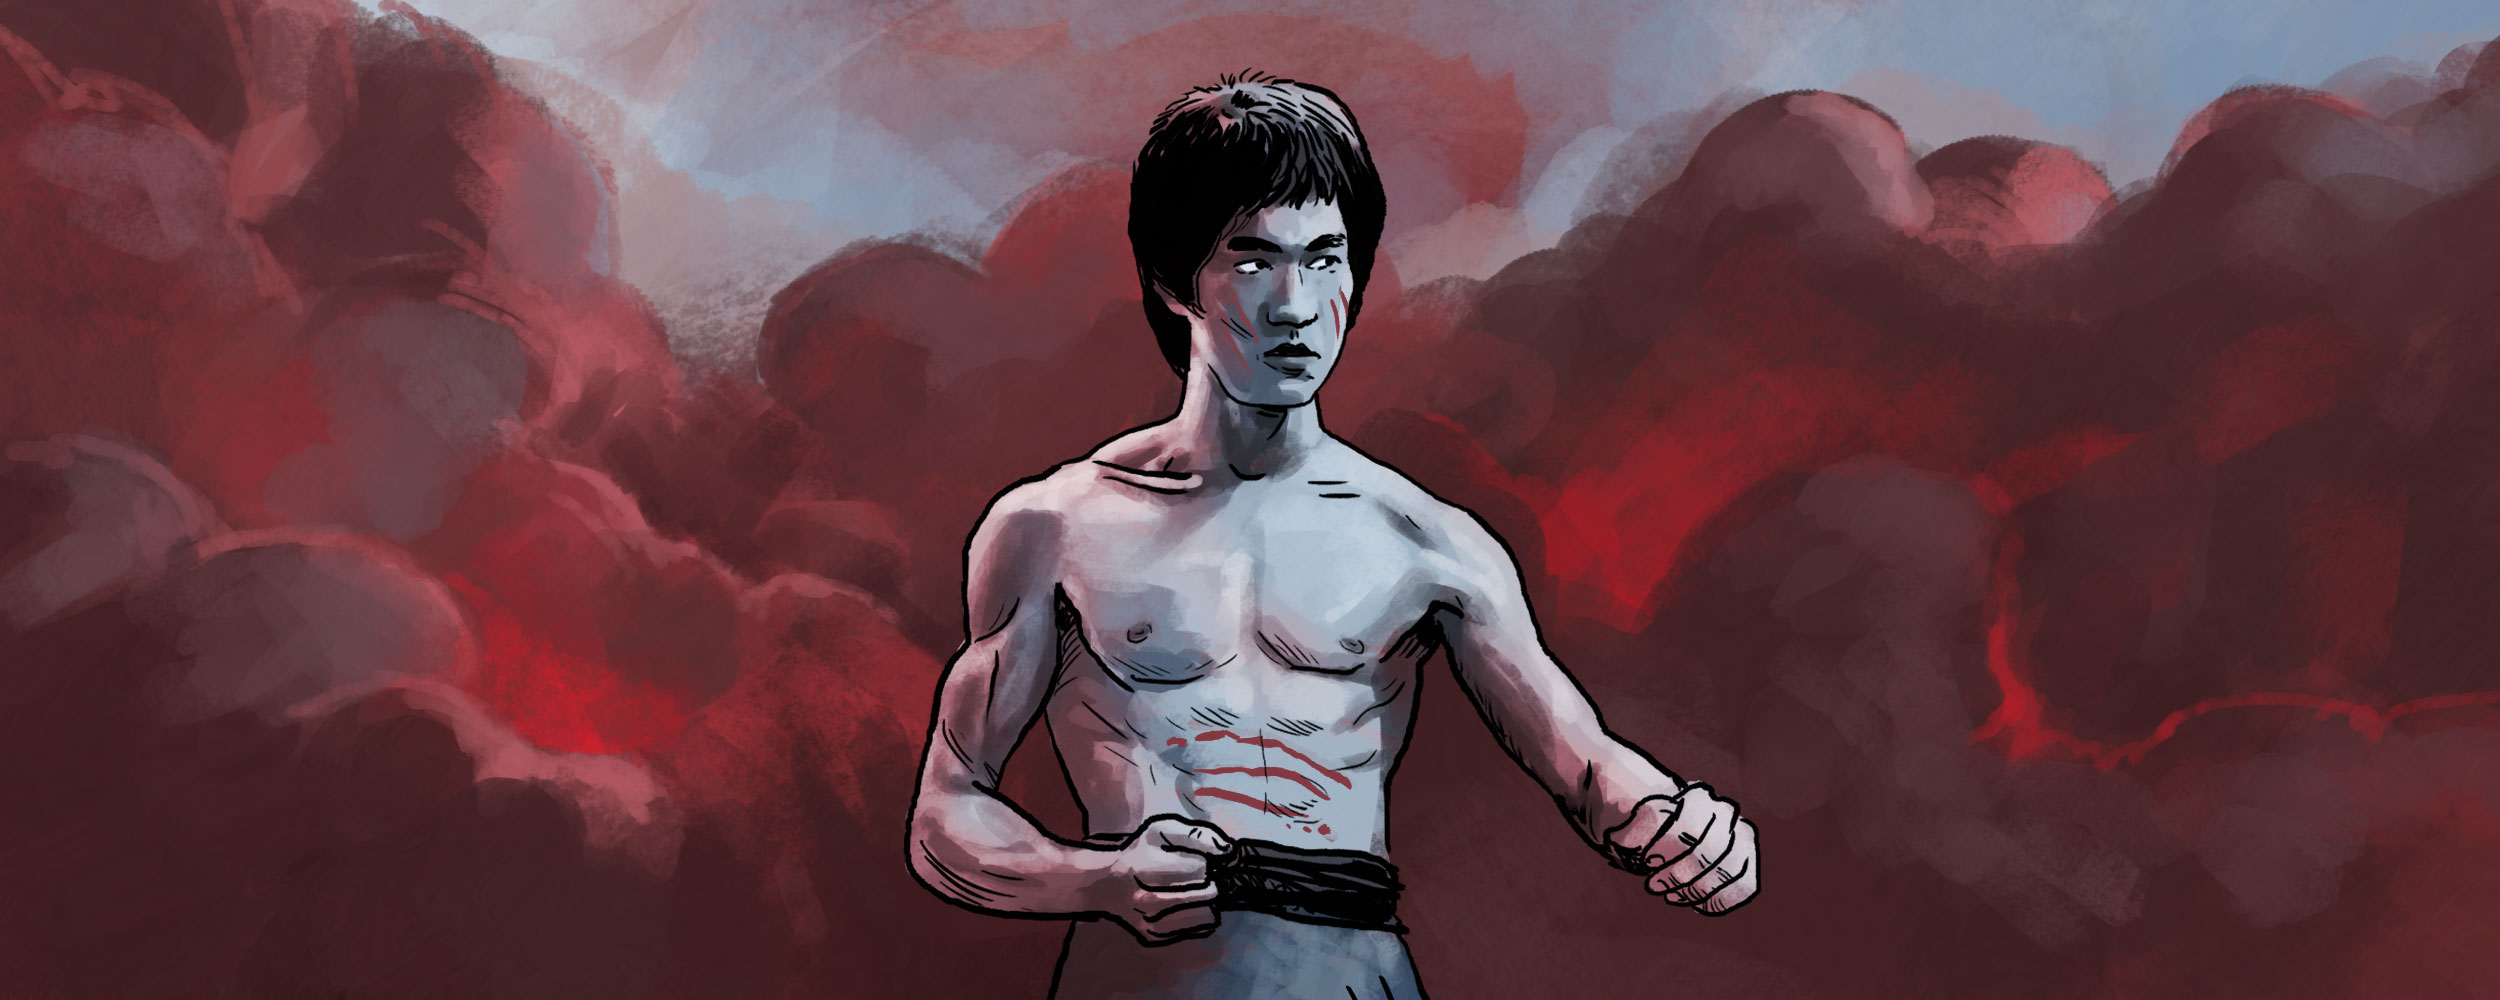 Bruce Lee's Martial Arts Legacy - SCMP Series | South China Morning Post